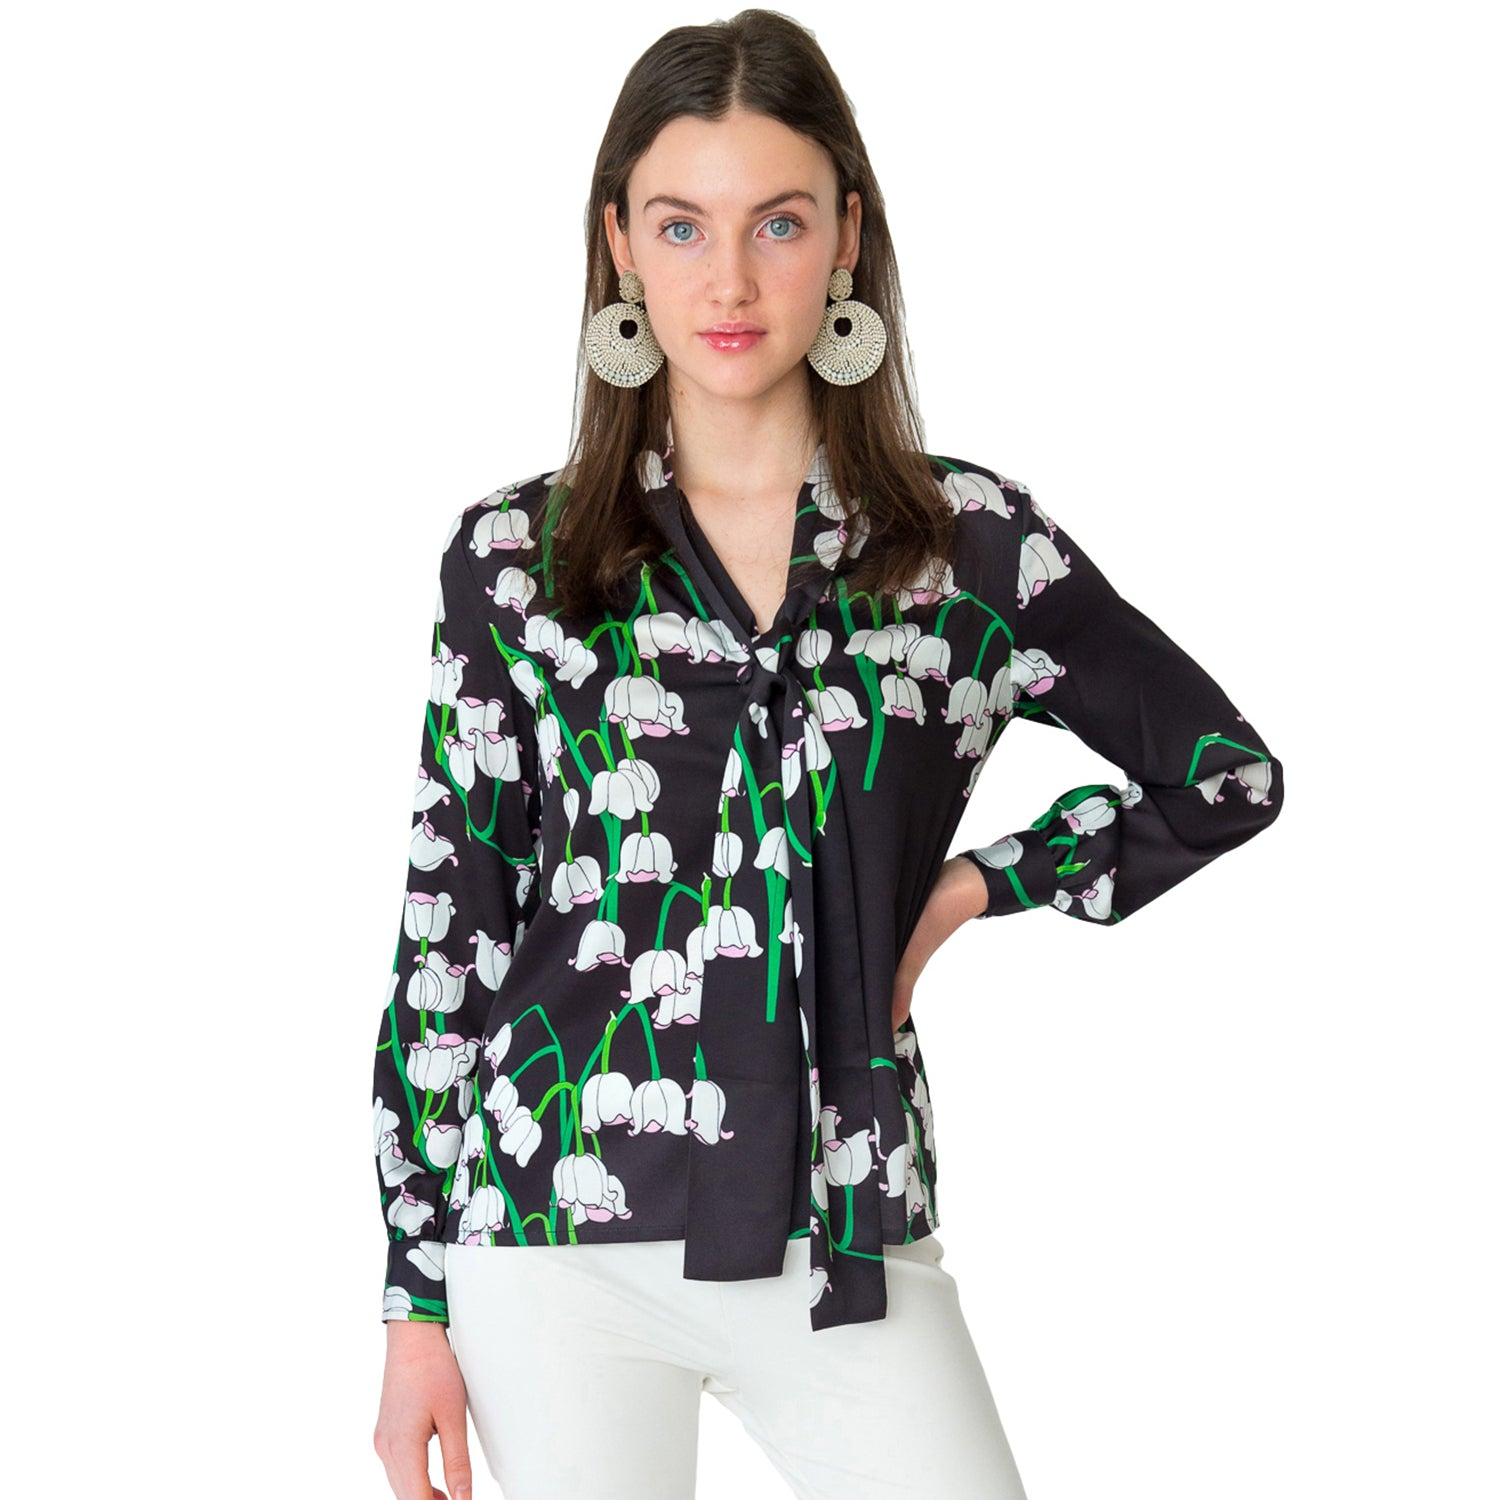 Frani Tie Neck Blouse in Big Lily - Elizabeth Ackerman New York